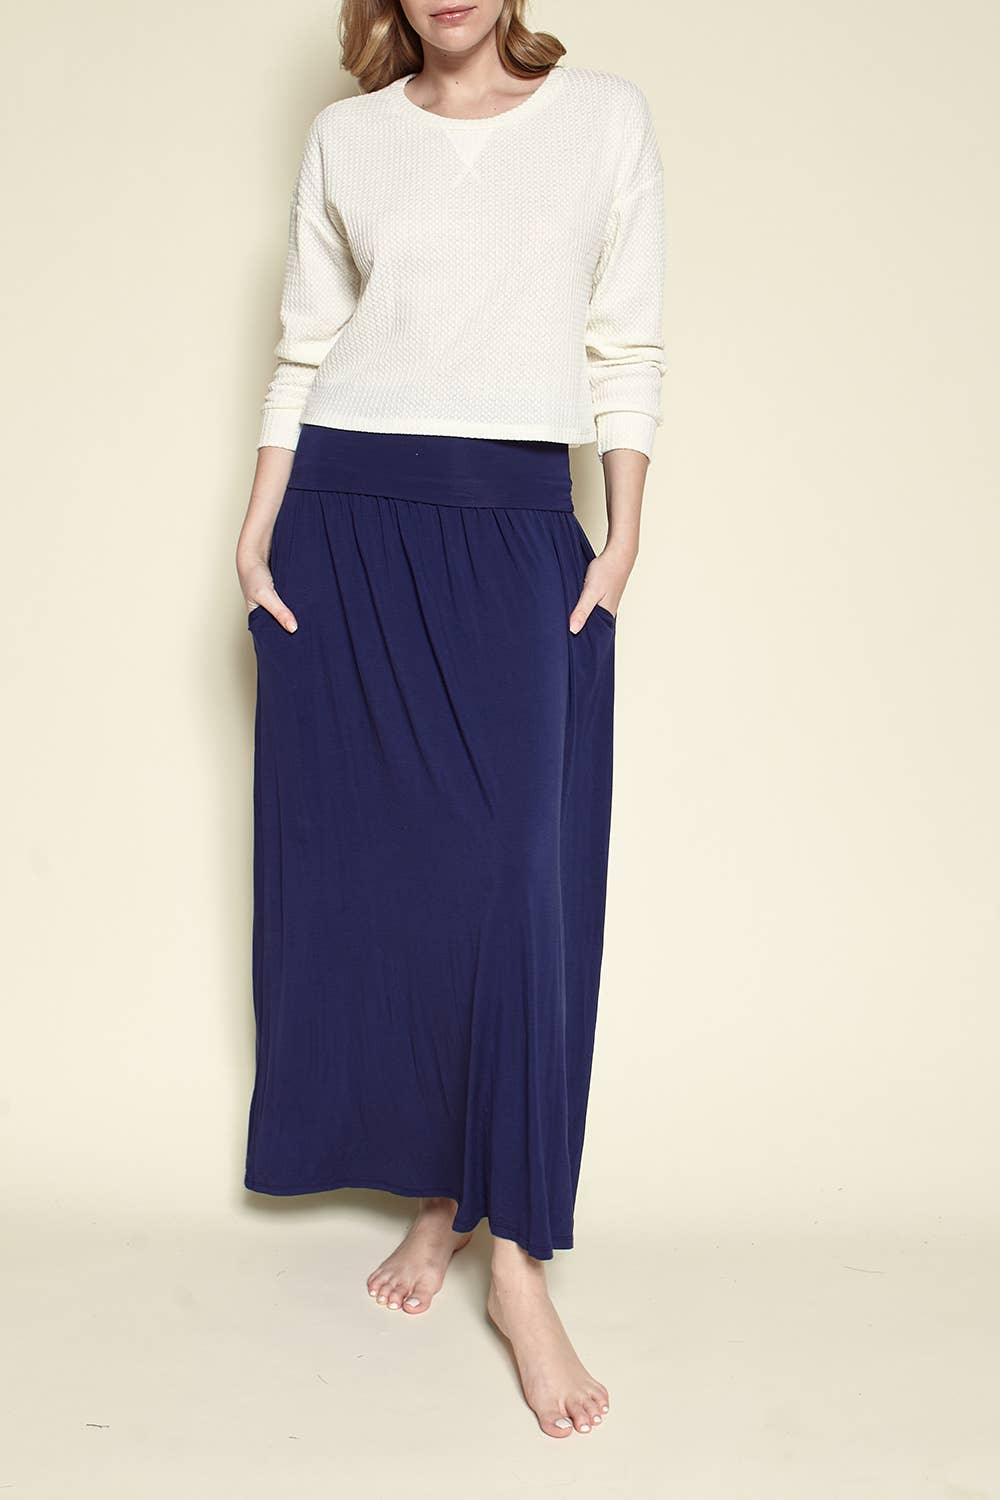 Studio Ko Clothing - BAMBOO YOGA MAXI SKIRT